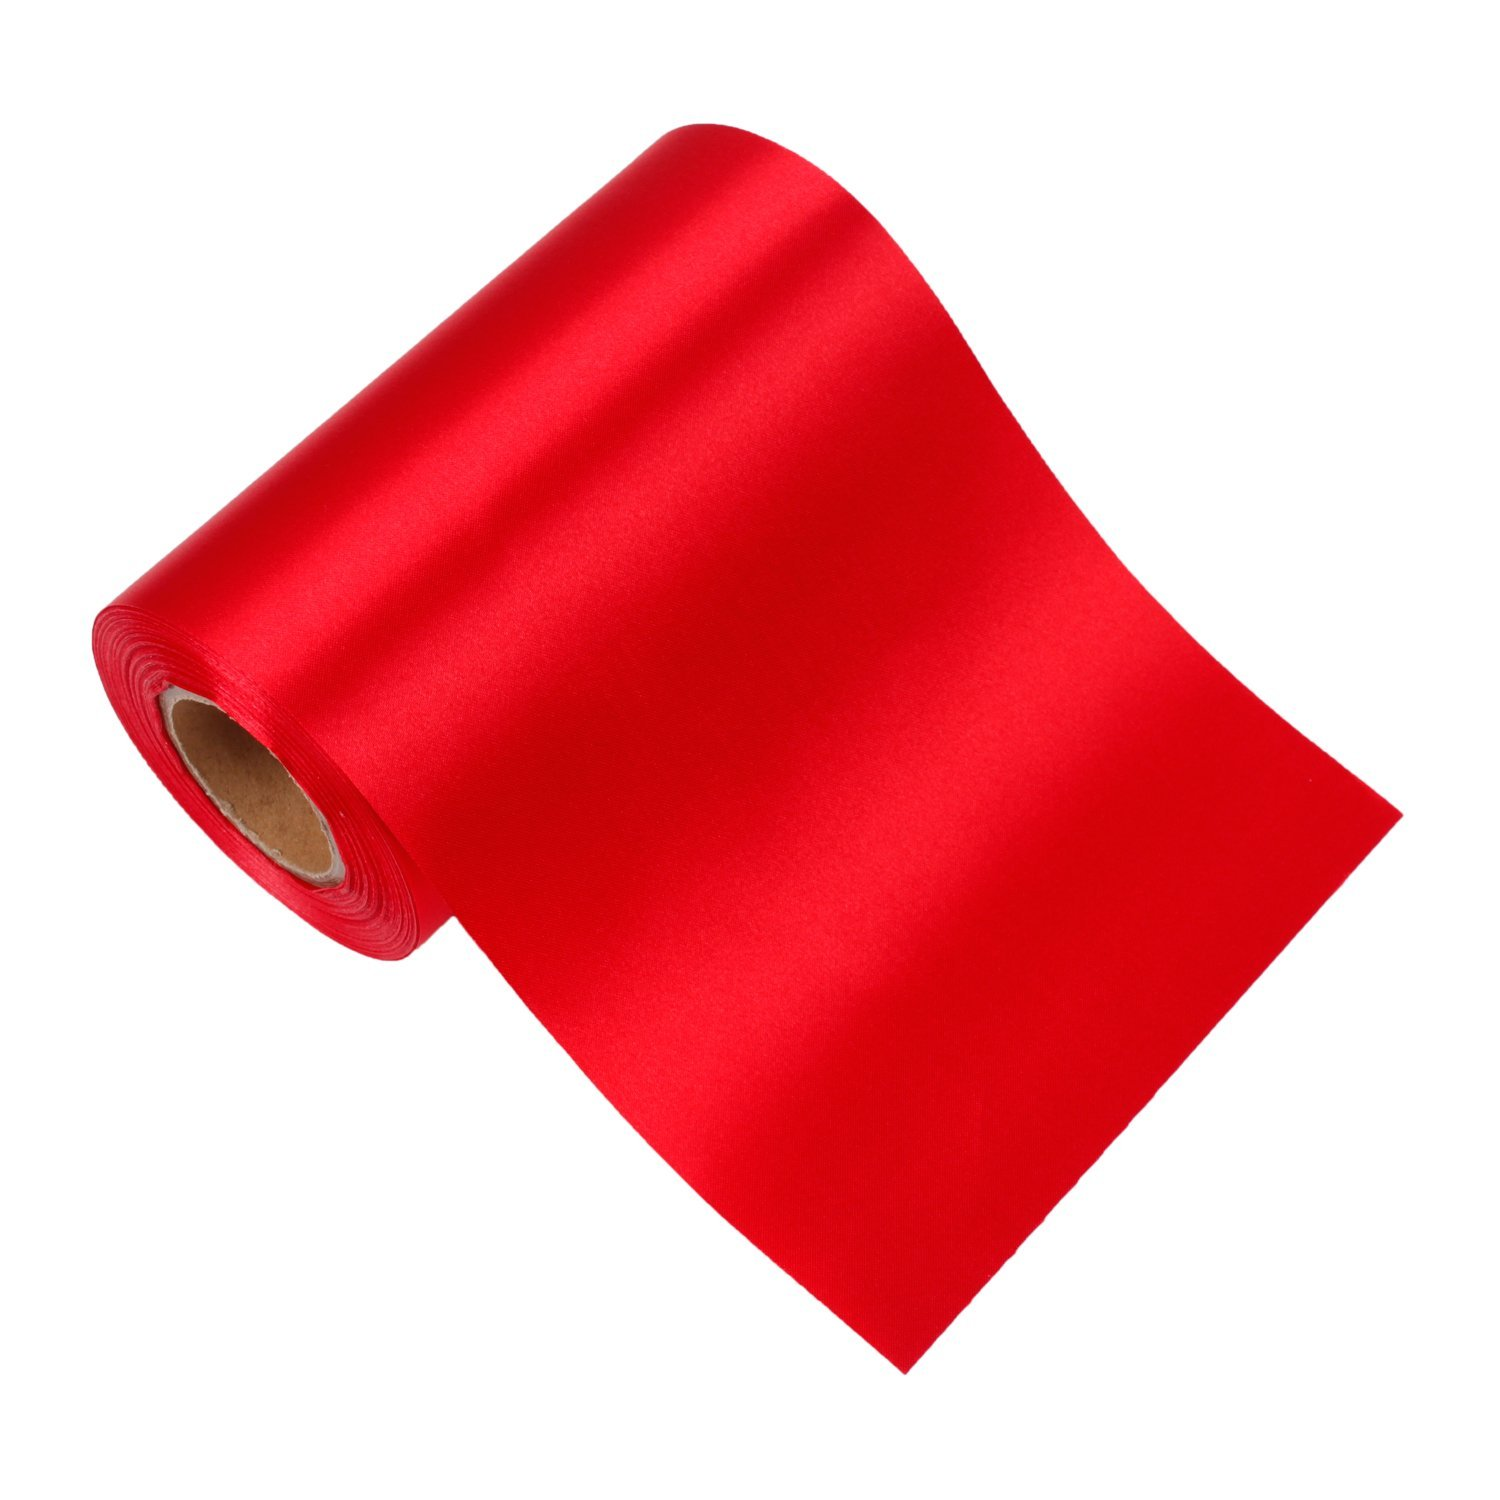 Laribbons 6 inch Wide Grand Opening Ceremony Satin Ribbon, Wedding Party Decoration Craft Ribbon, Also for Making Car Bows - 25 Yard/spool ( Red ) 6285900